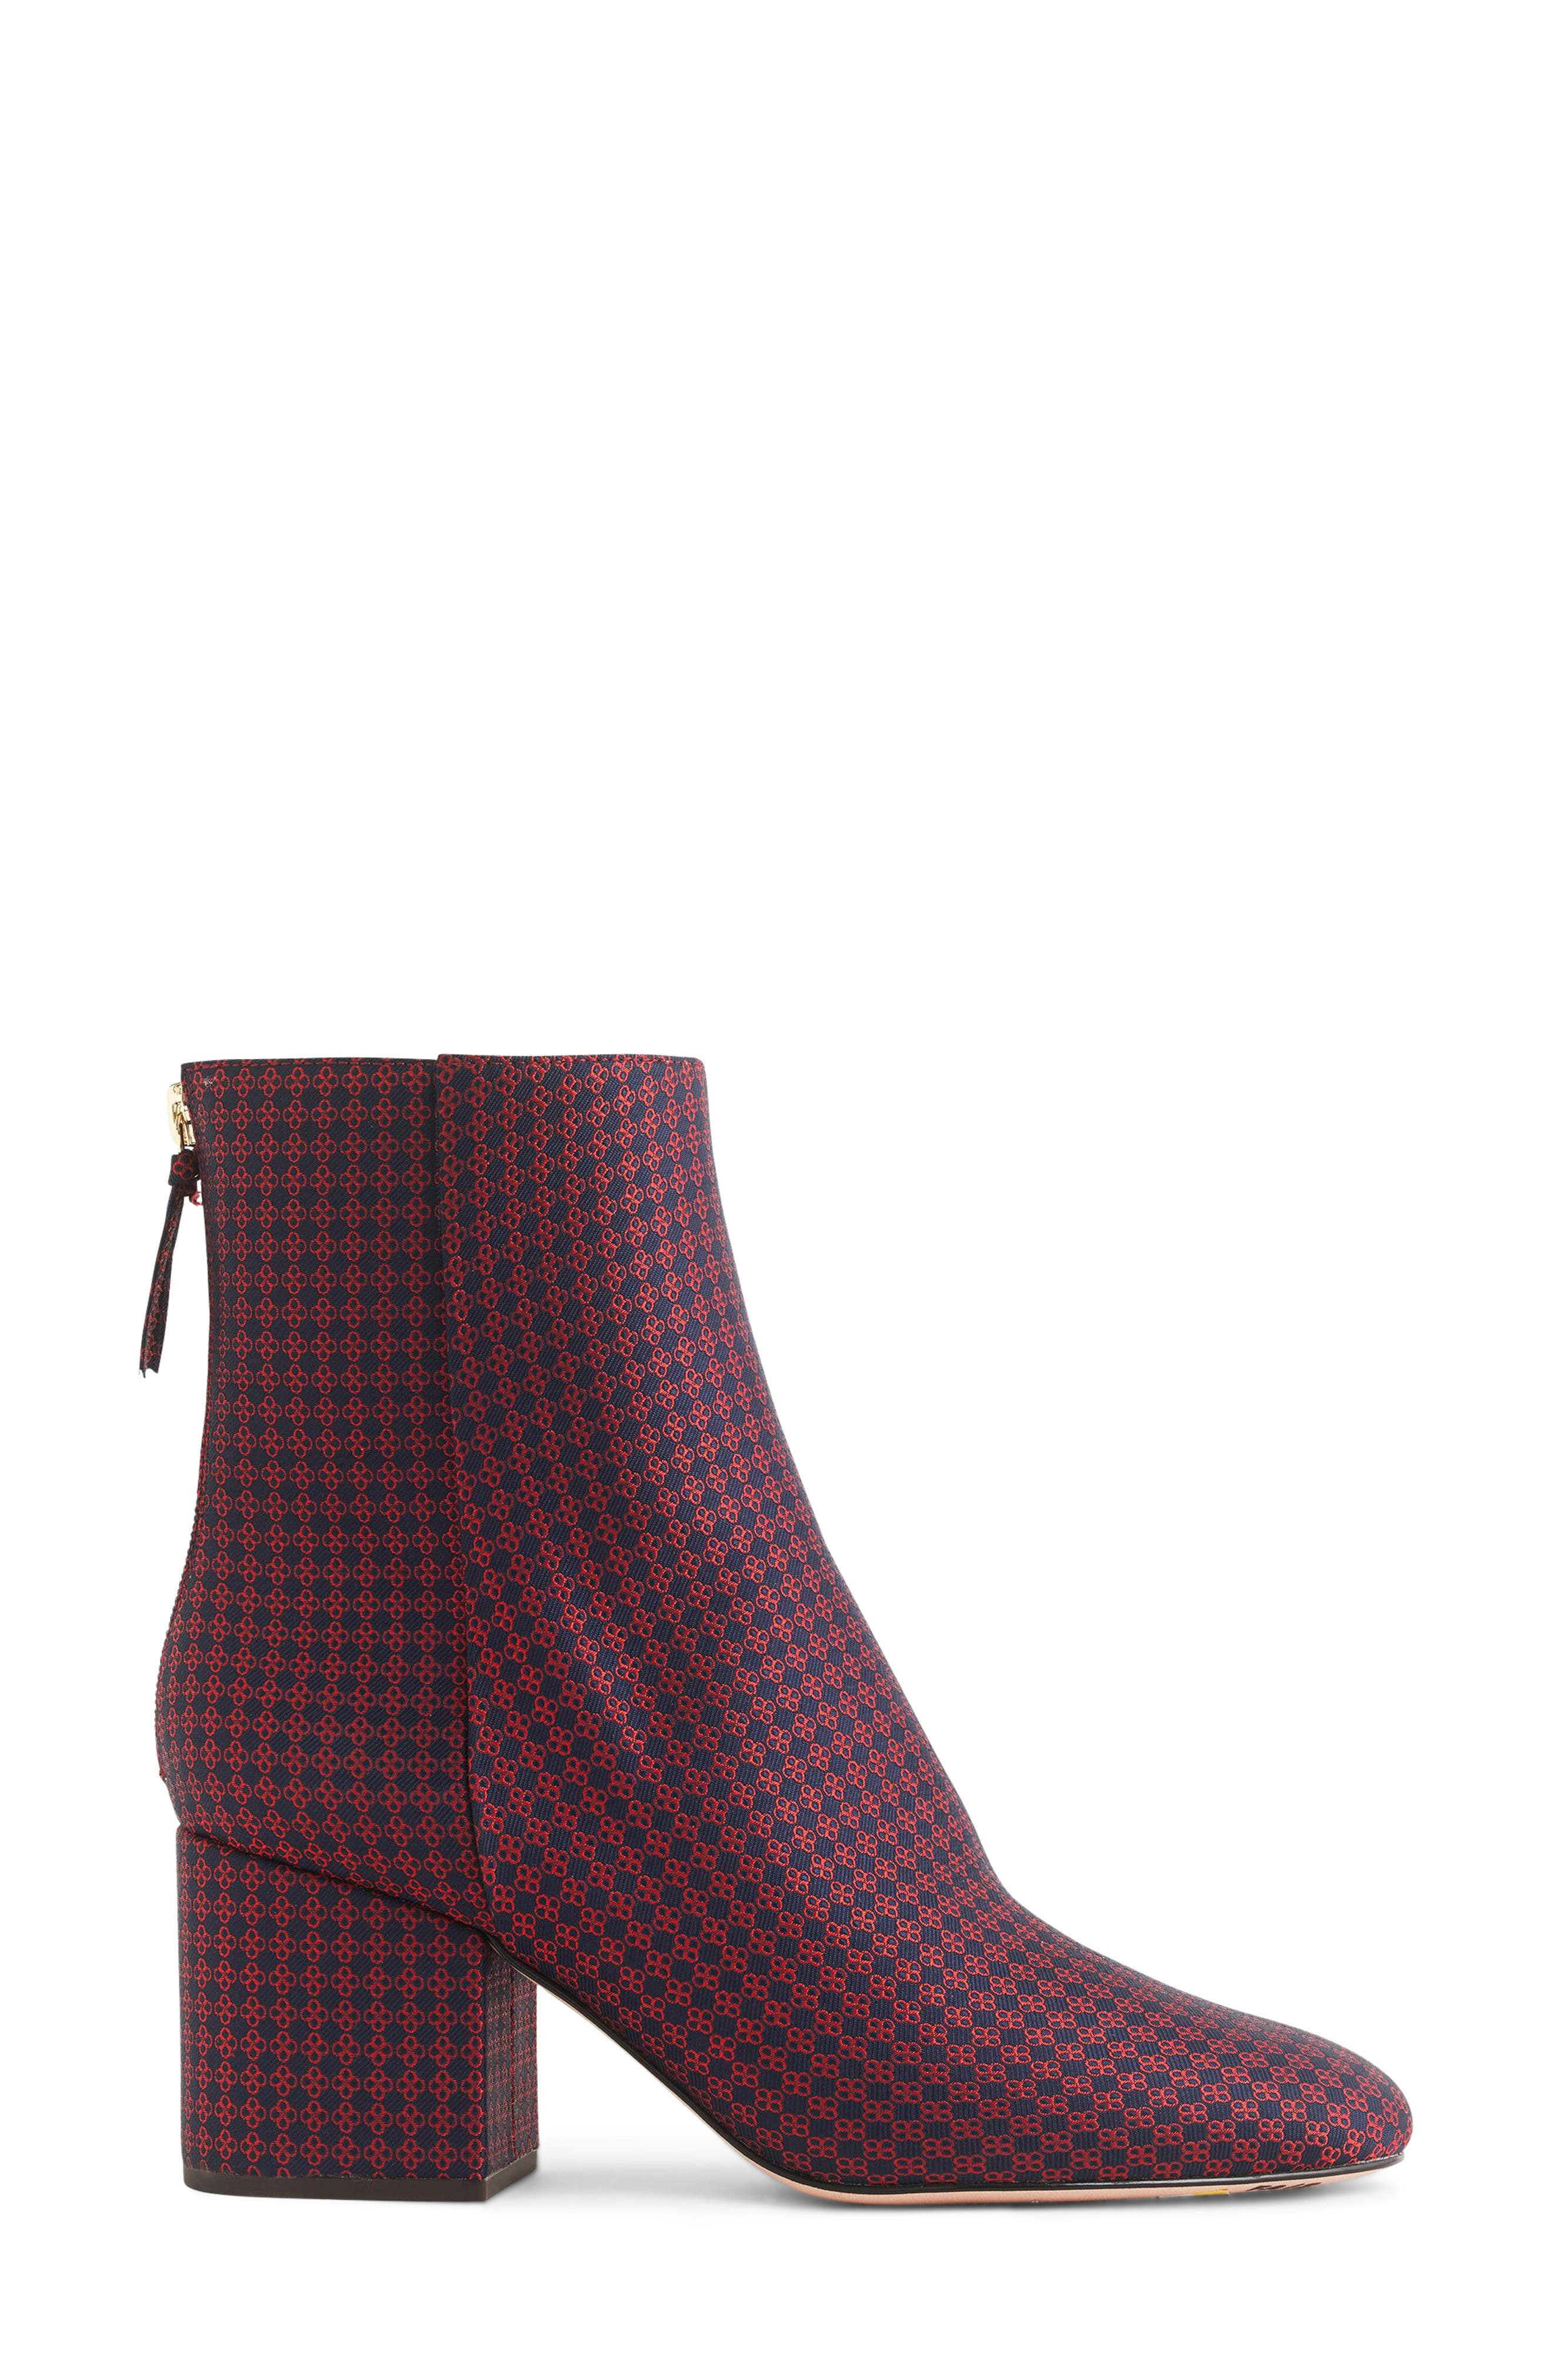 J.CREW, Maya Ankle Bootie, Alternate thumbnail 2, color, NAVY/ RED PLAID